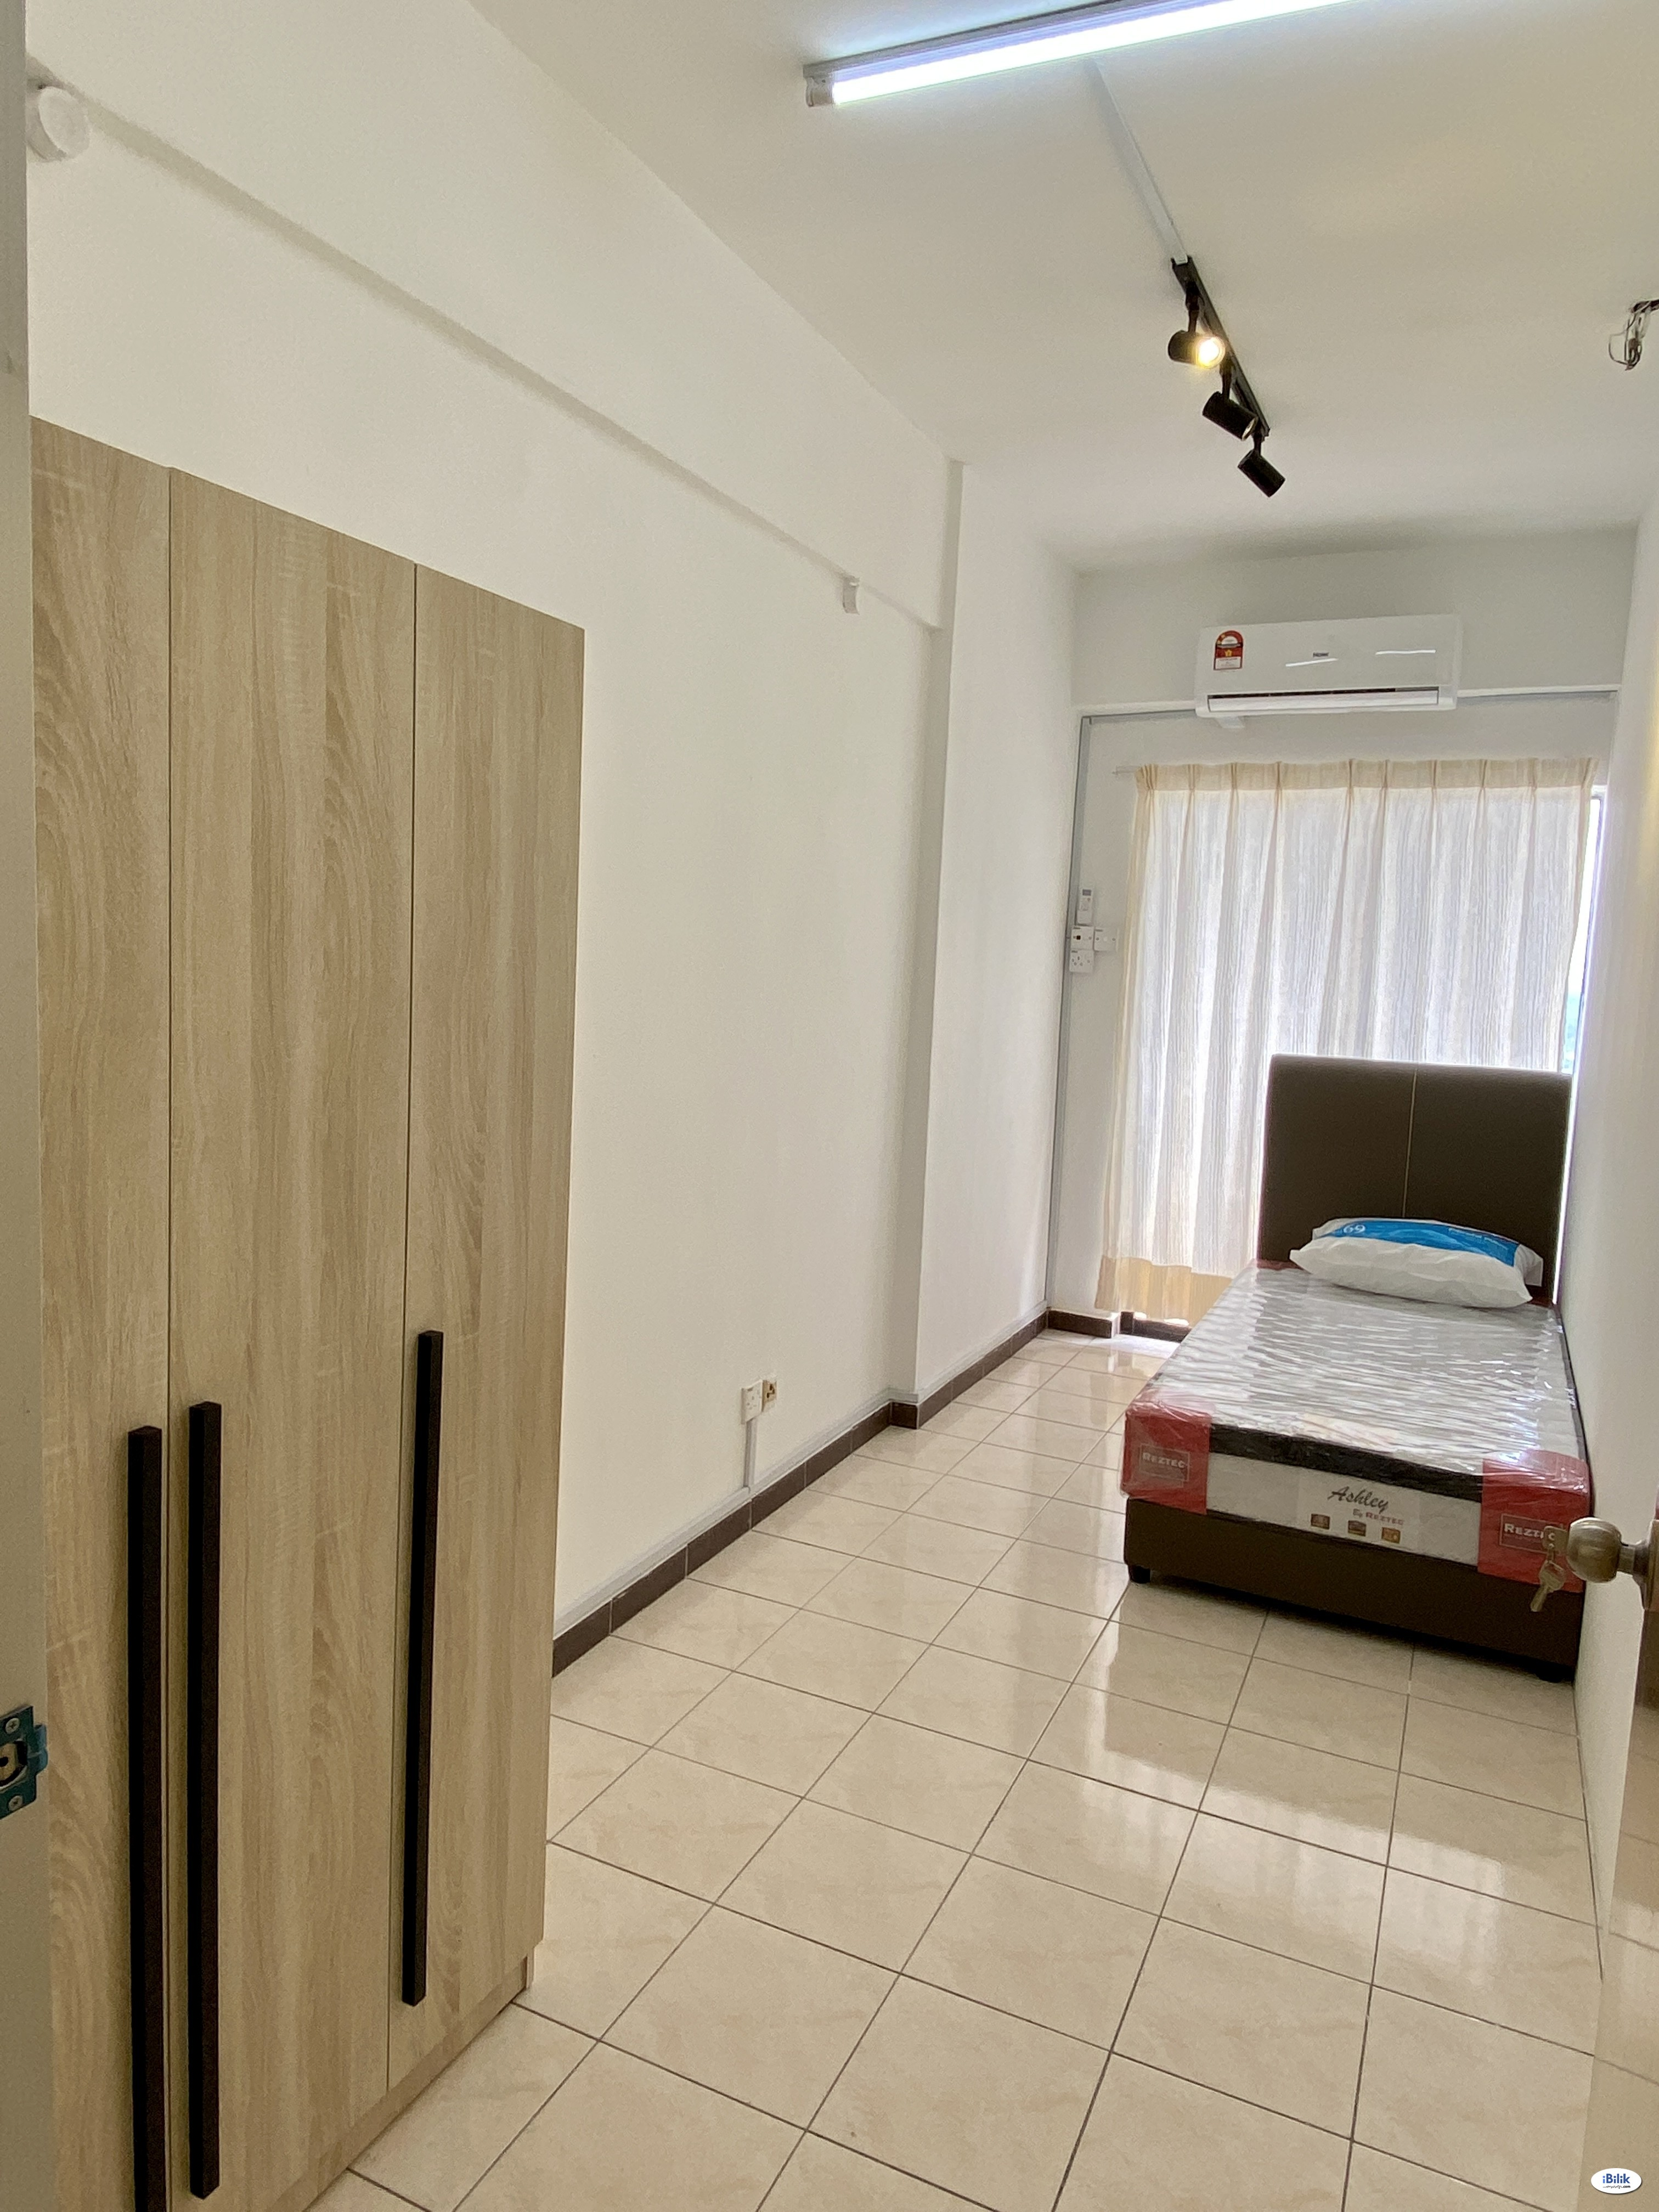 small room include all utilities wifi and ac, bukit jalil, near to lrt sri petaling.